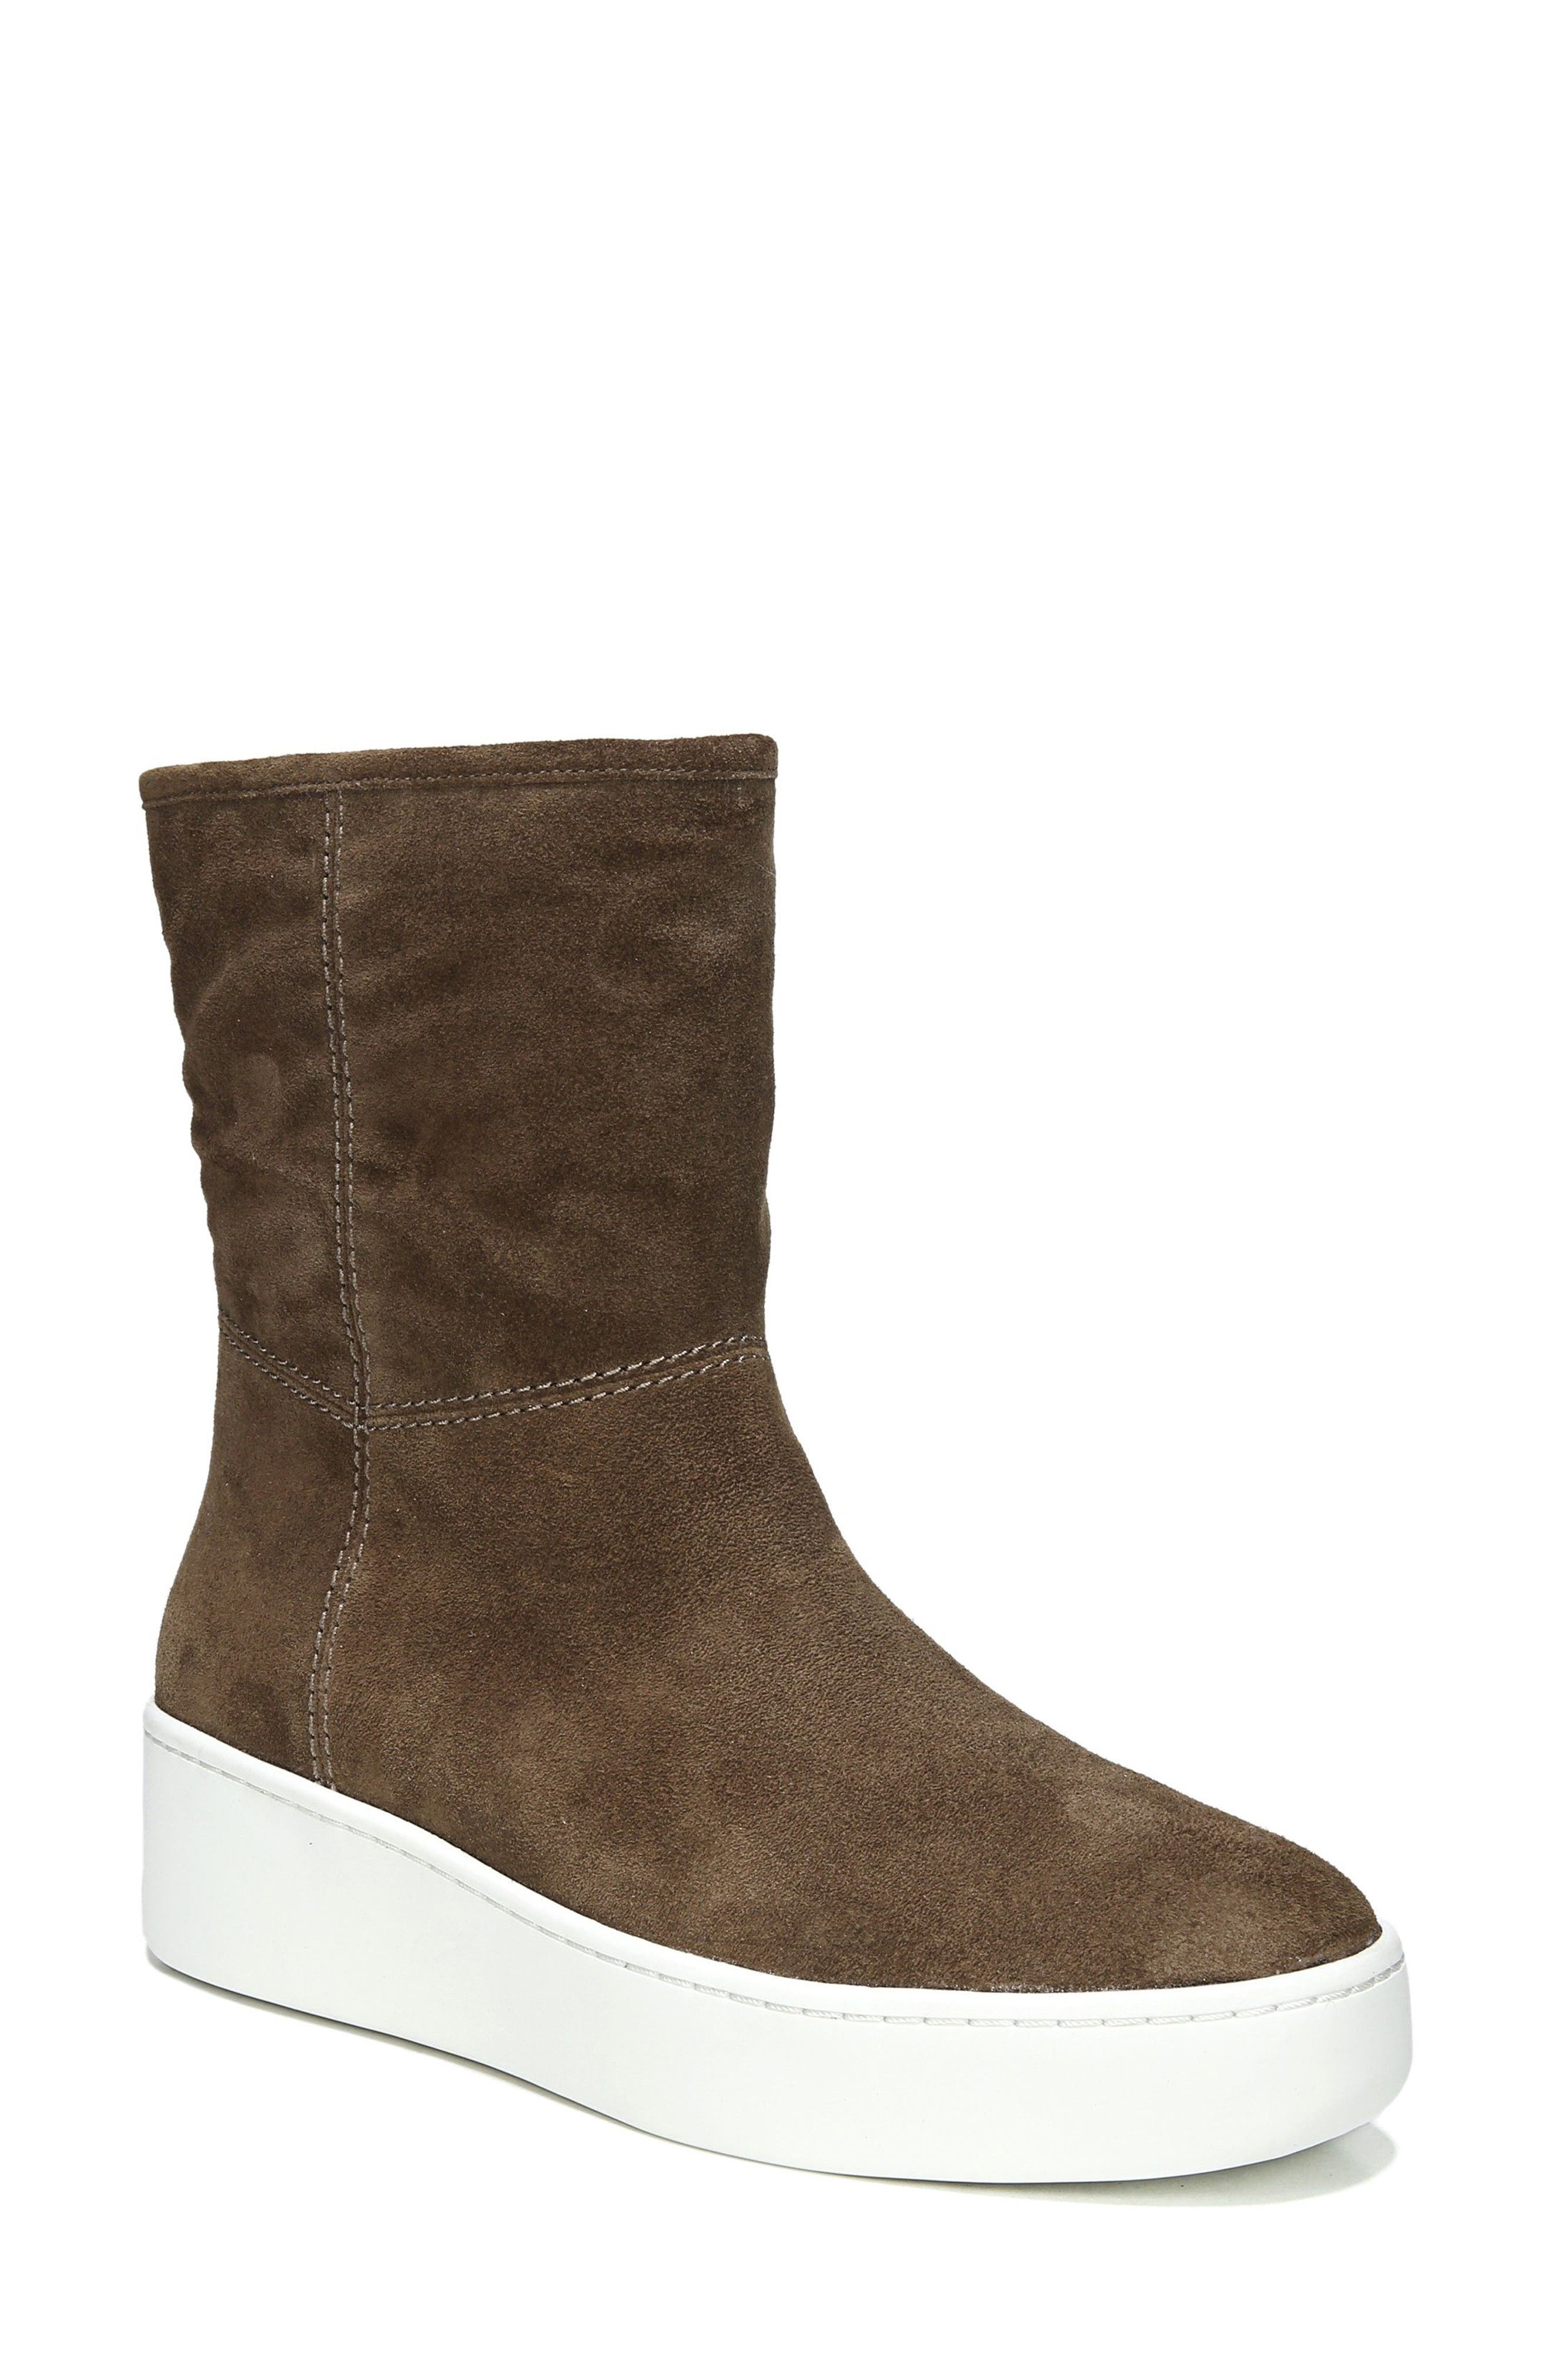 Elona Genuine Shearling Lined Sneaker Boot,                             Main thumbnail 1, color,                             Bark Suede